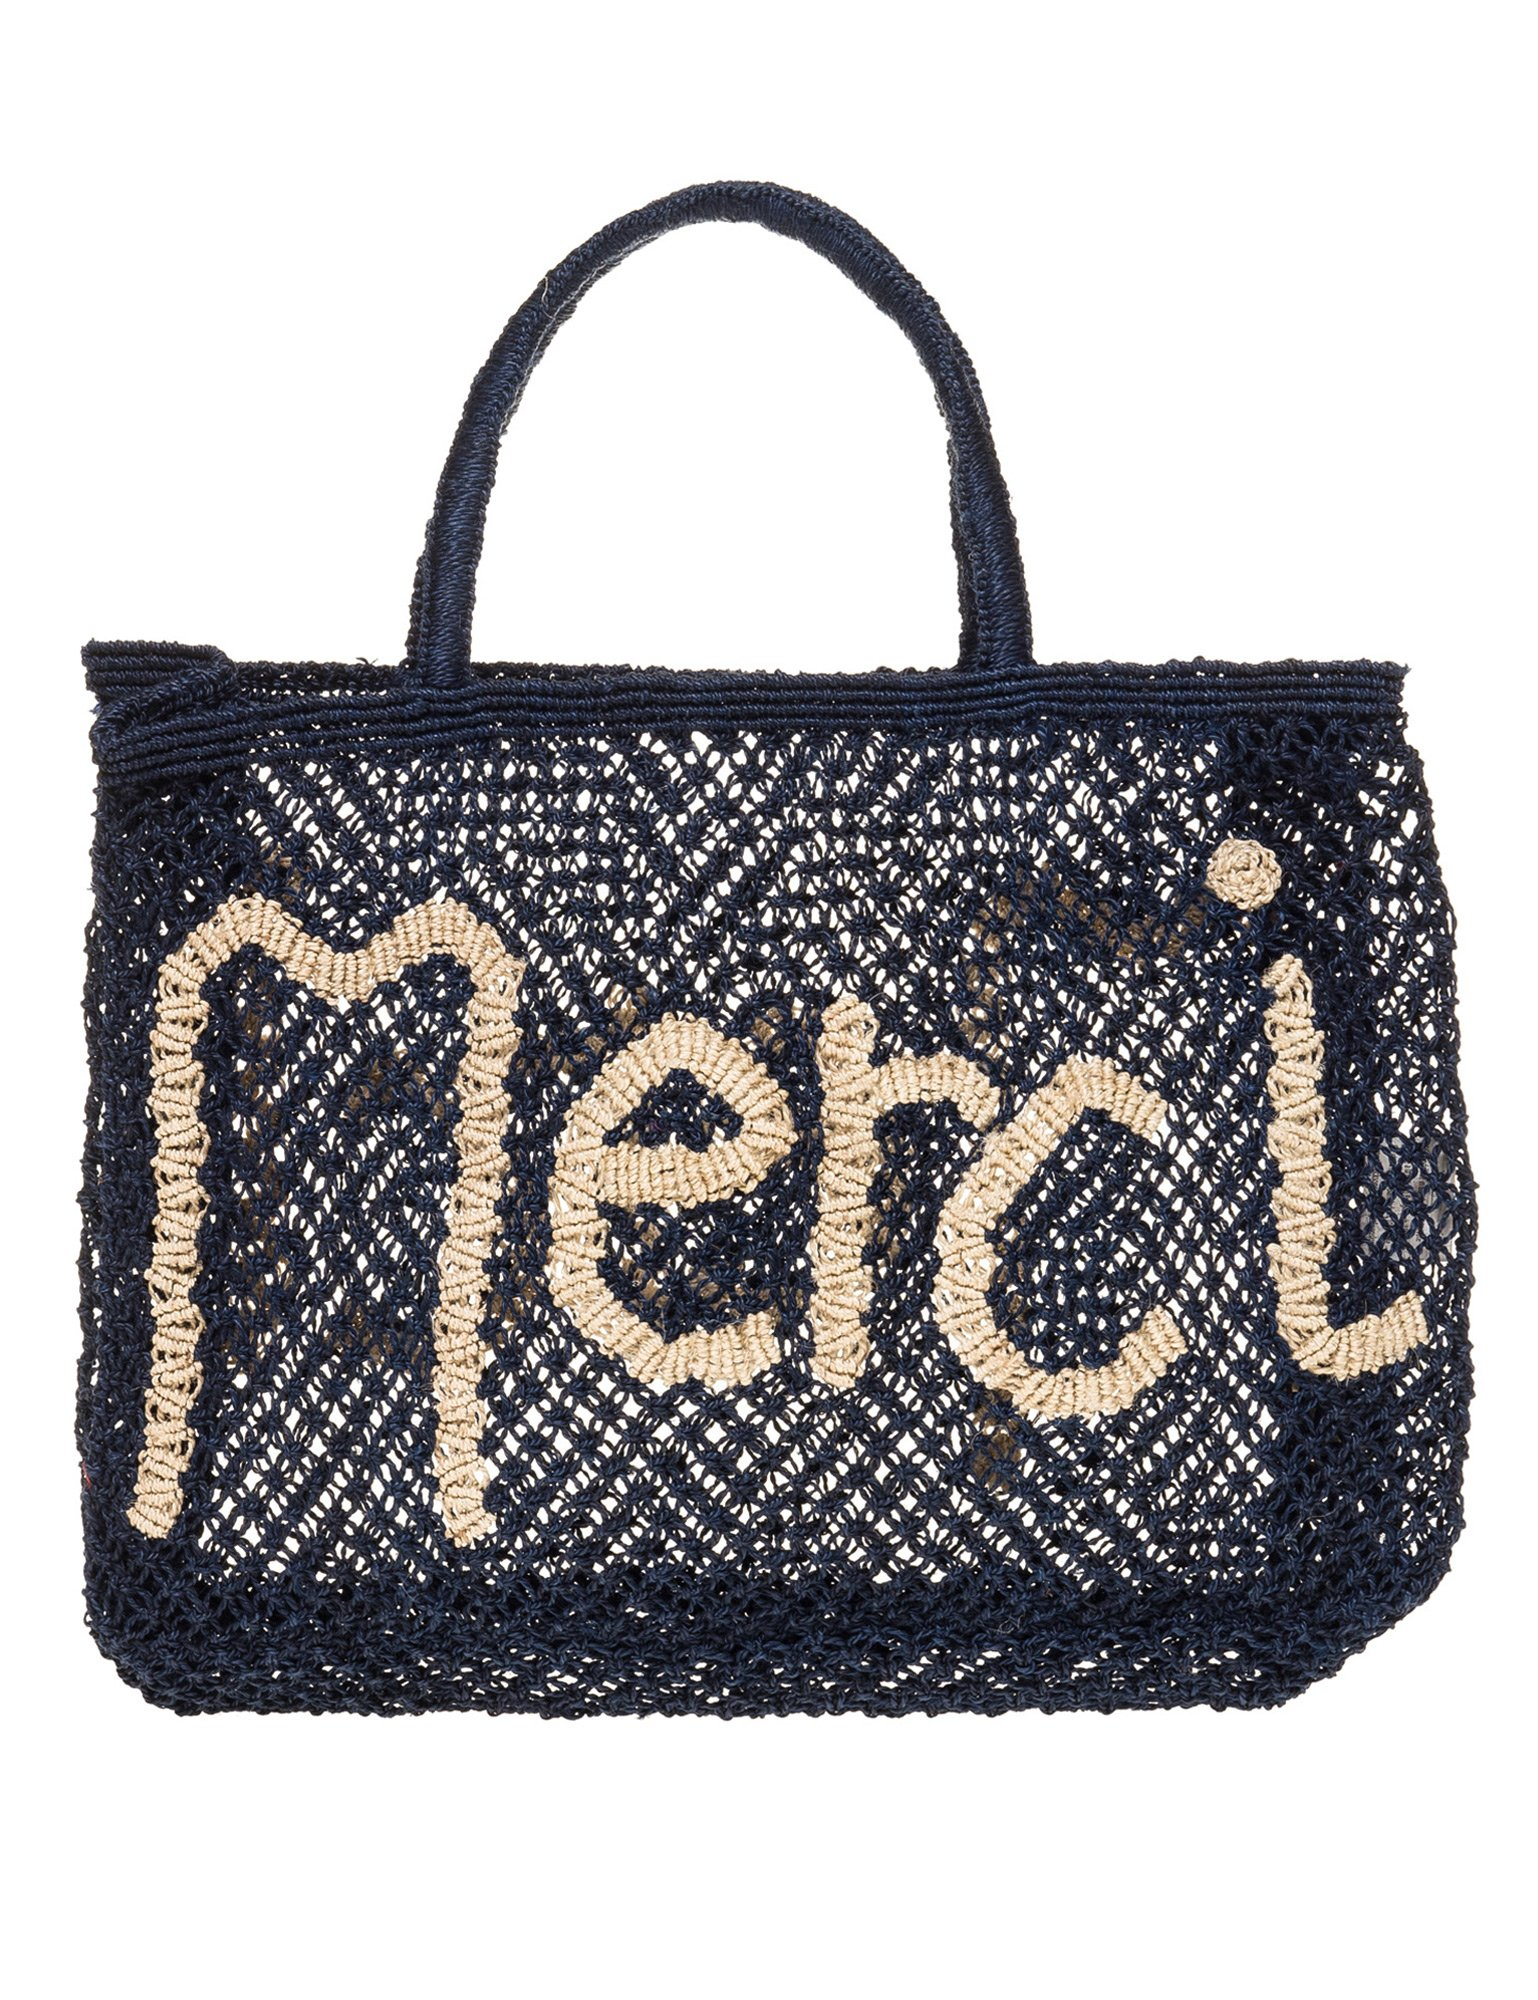 The Jacksons Women's Merci Women's Blue Small Jute Bag Blue